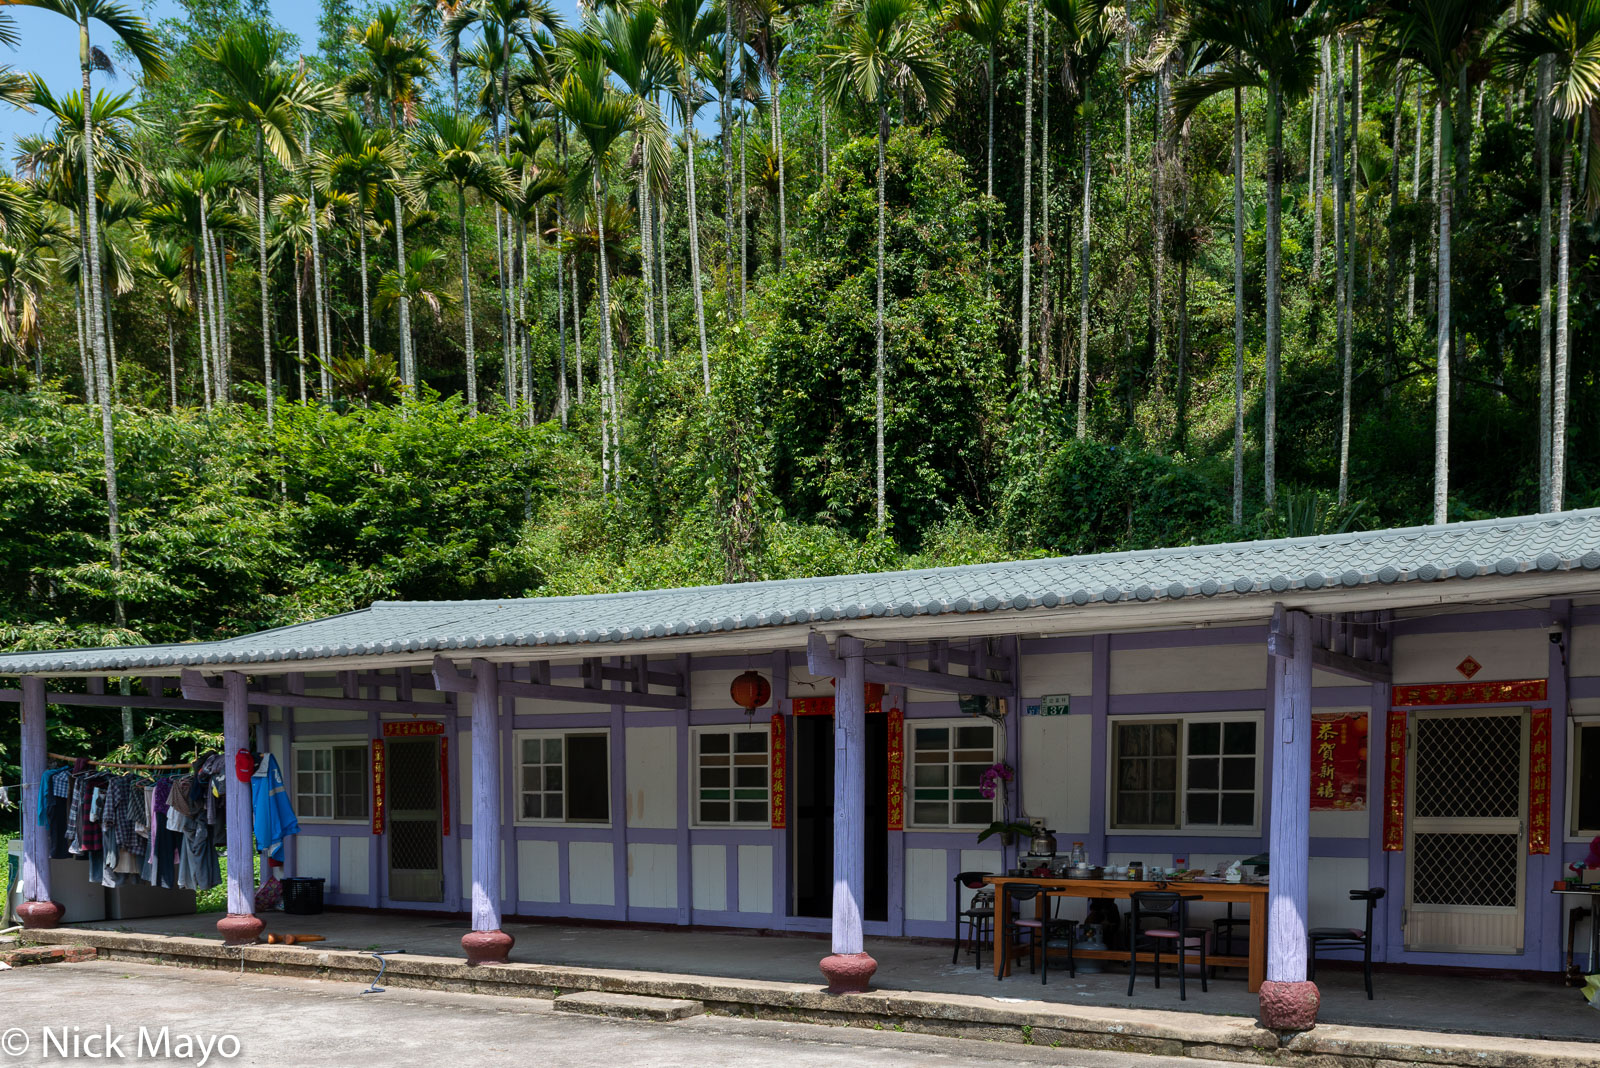 A tea farmer's traditional residence below betel trees at Ruili in Chiayi County.